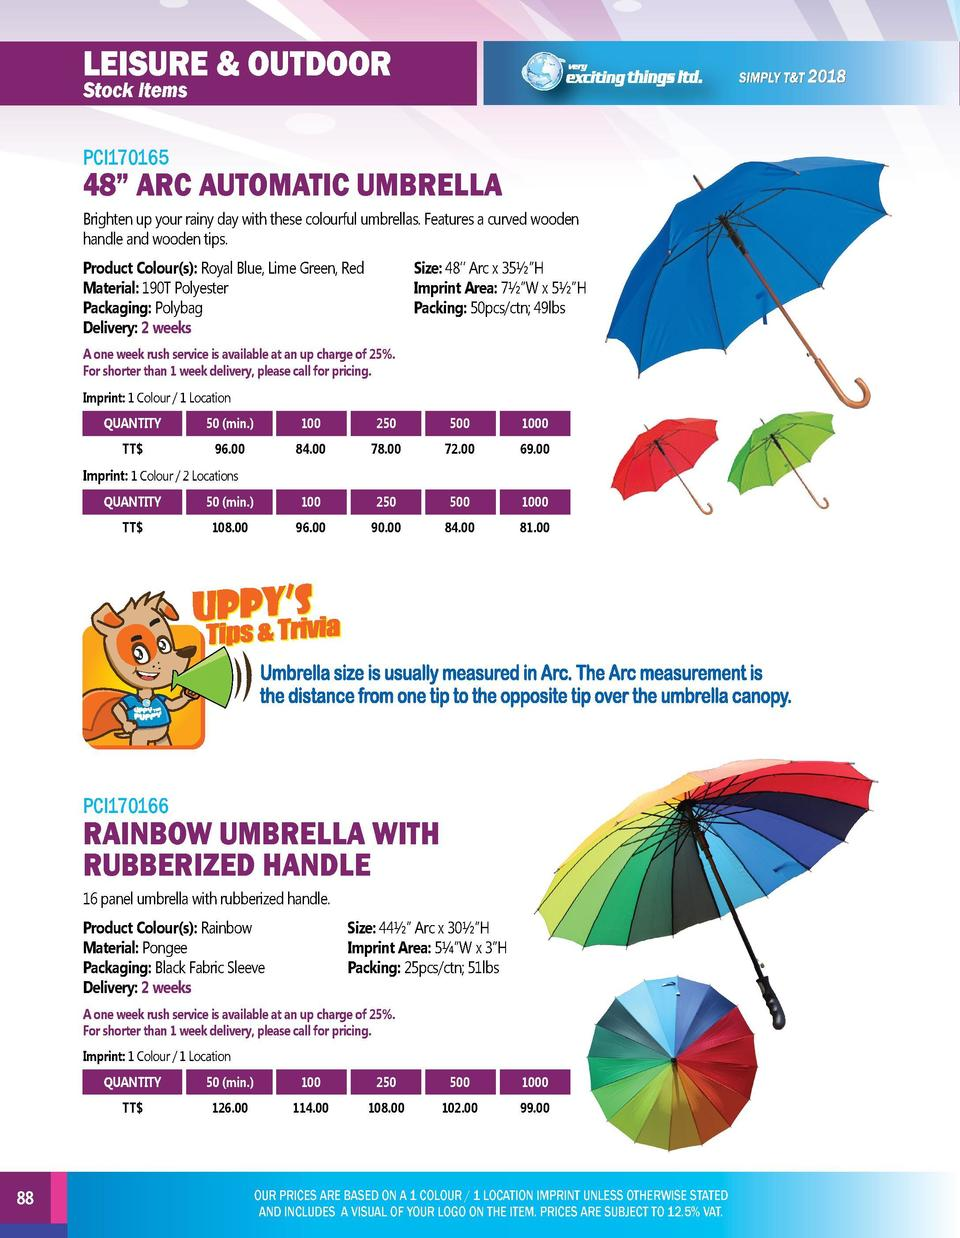 leisure   outdoor  leisure   outdoor  PCI170165  PCI170167  Brighten up your rainy day with these colourful umbrellas. Fea...